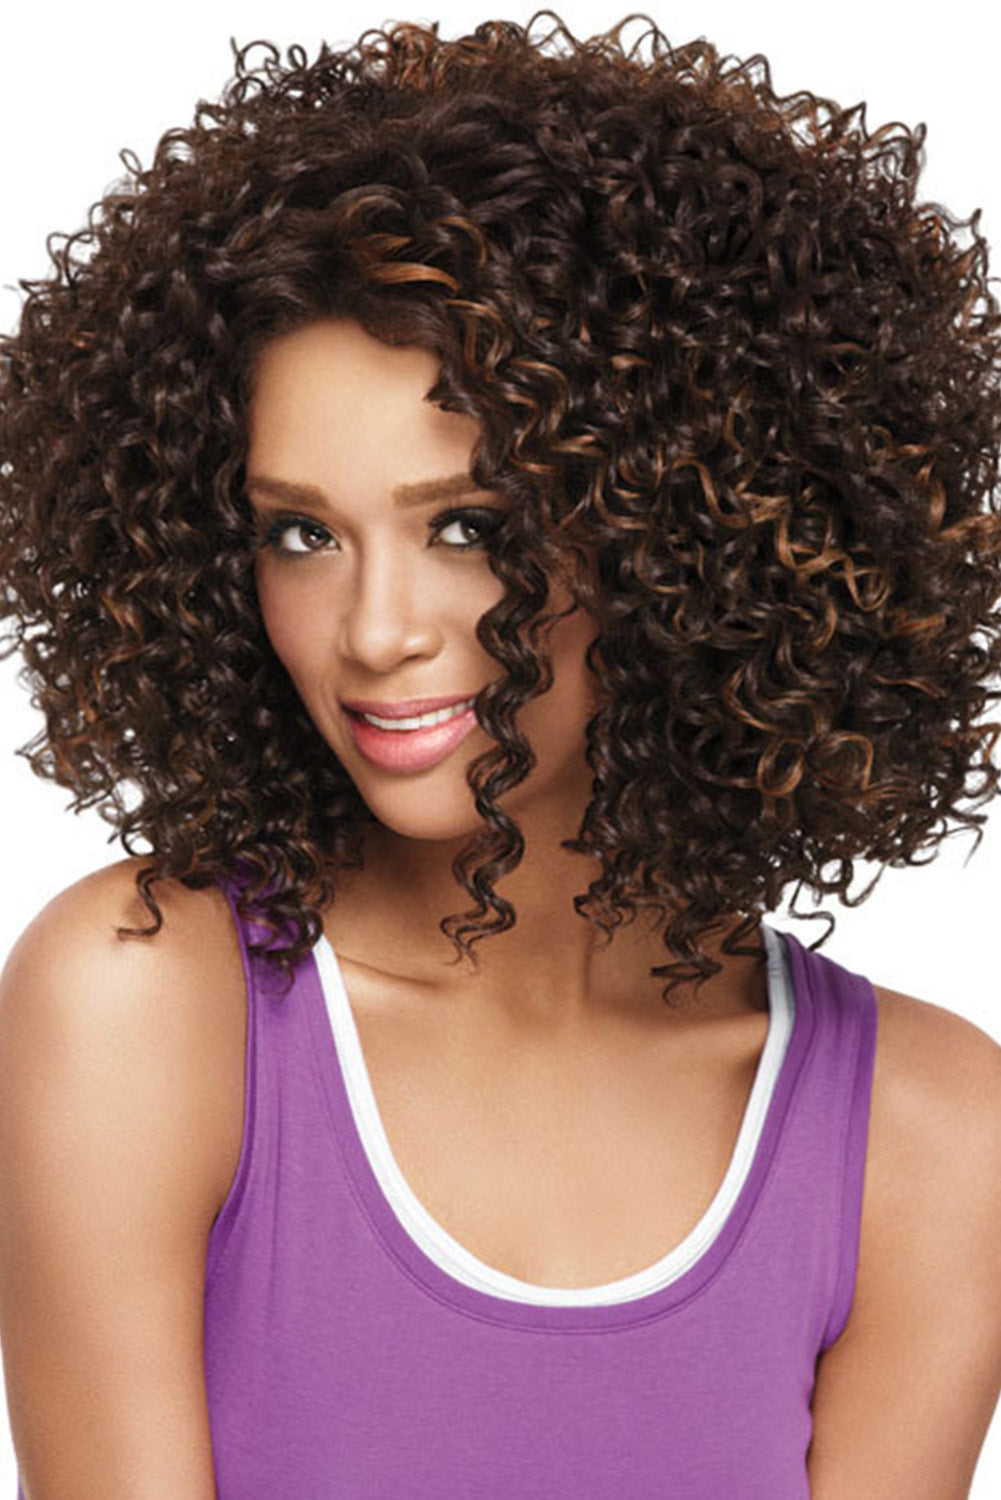 Brown African American Brunette Woman Wig Hair Wigs Discount Designer Fashion Clothes Shoes Bags Women Men Kids Children Black Owned Business